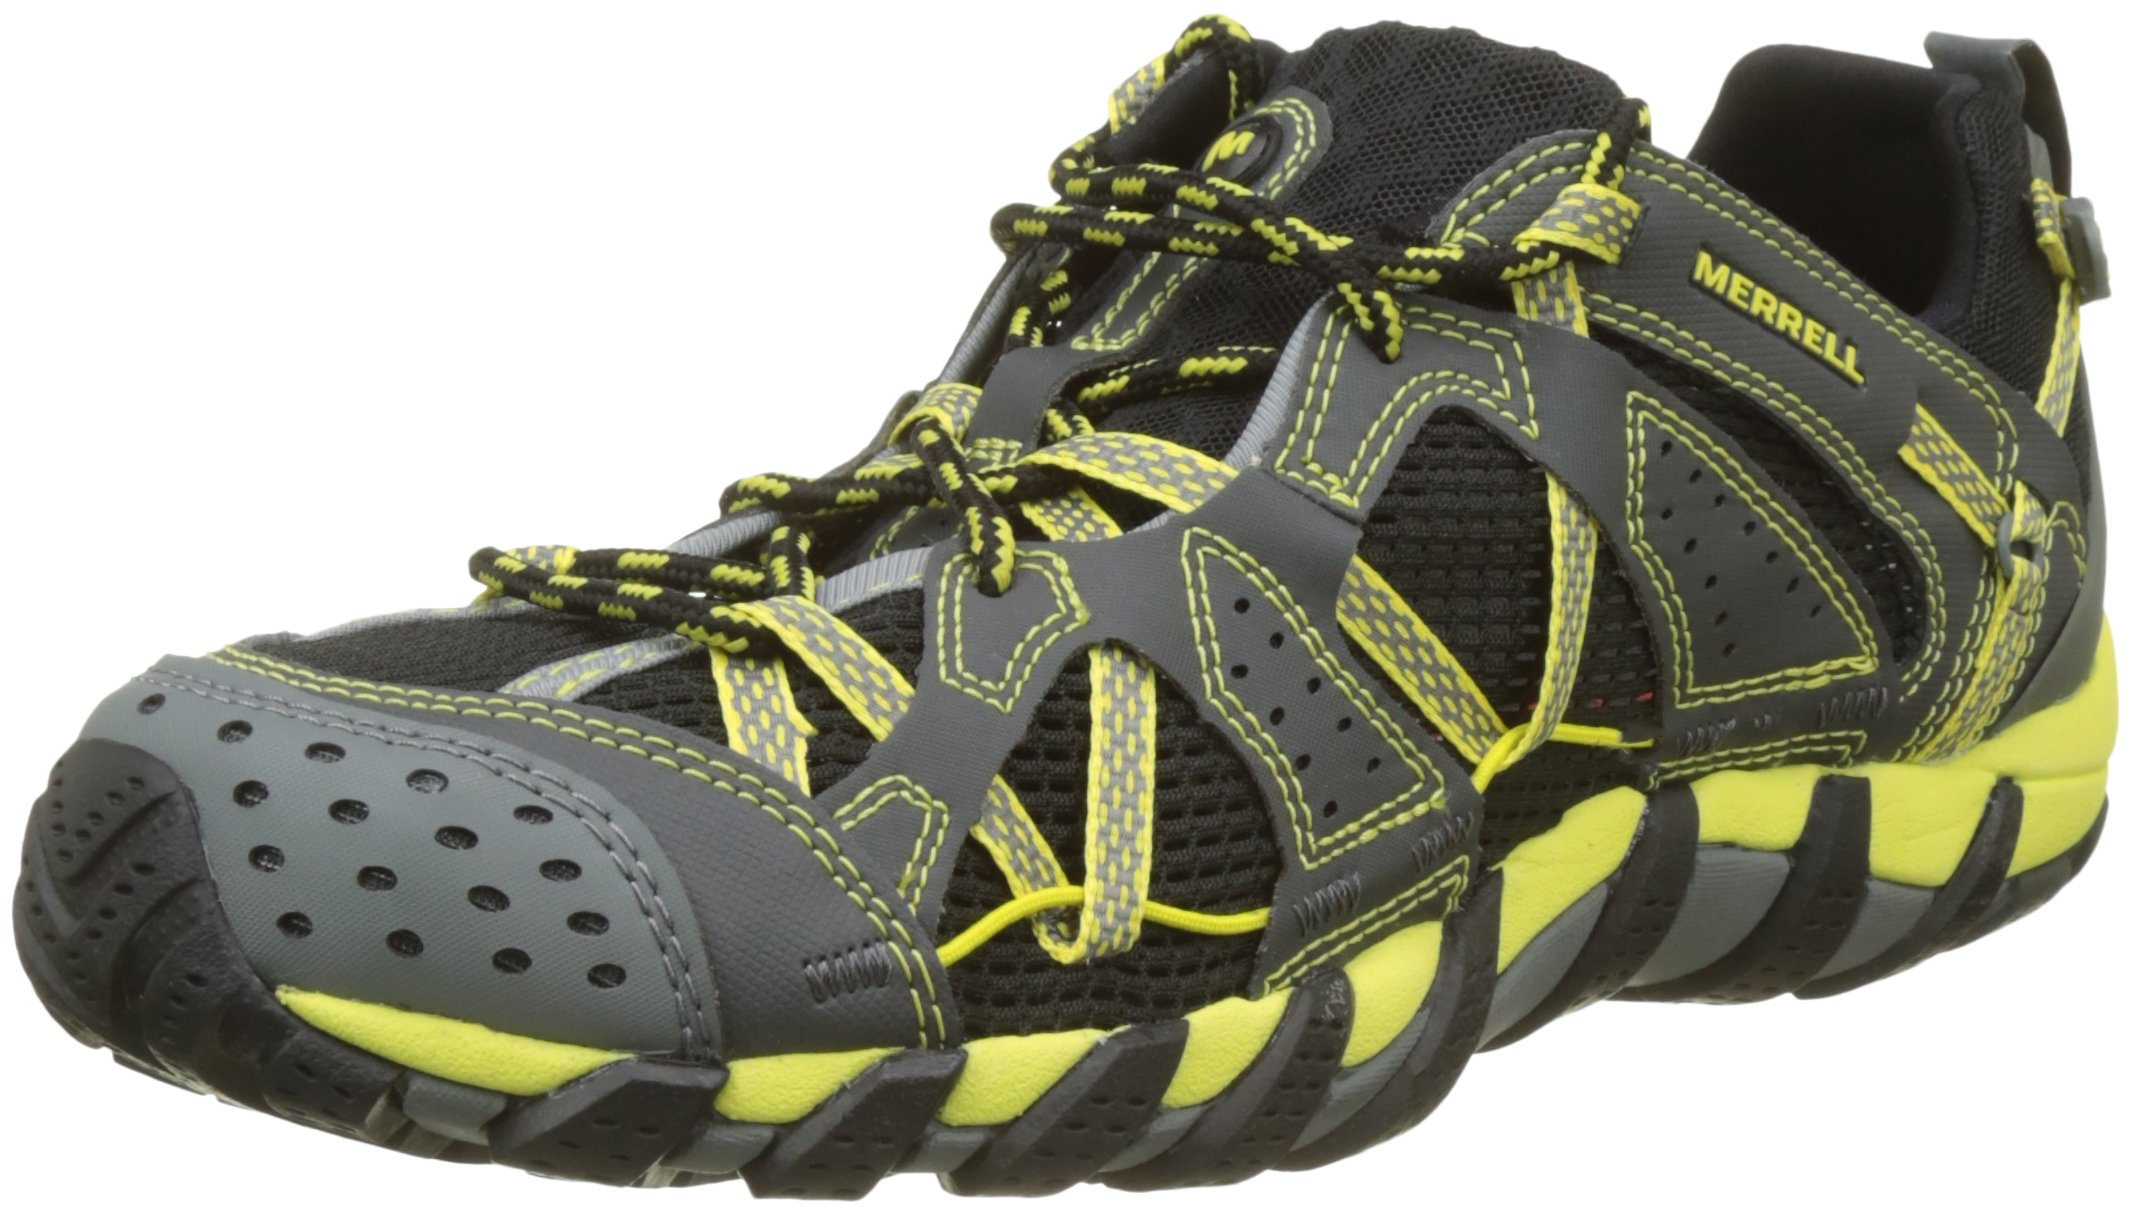 Merrell Waterpro Maipo Watersport Shoes 12 D(M) US Black